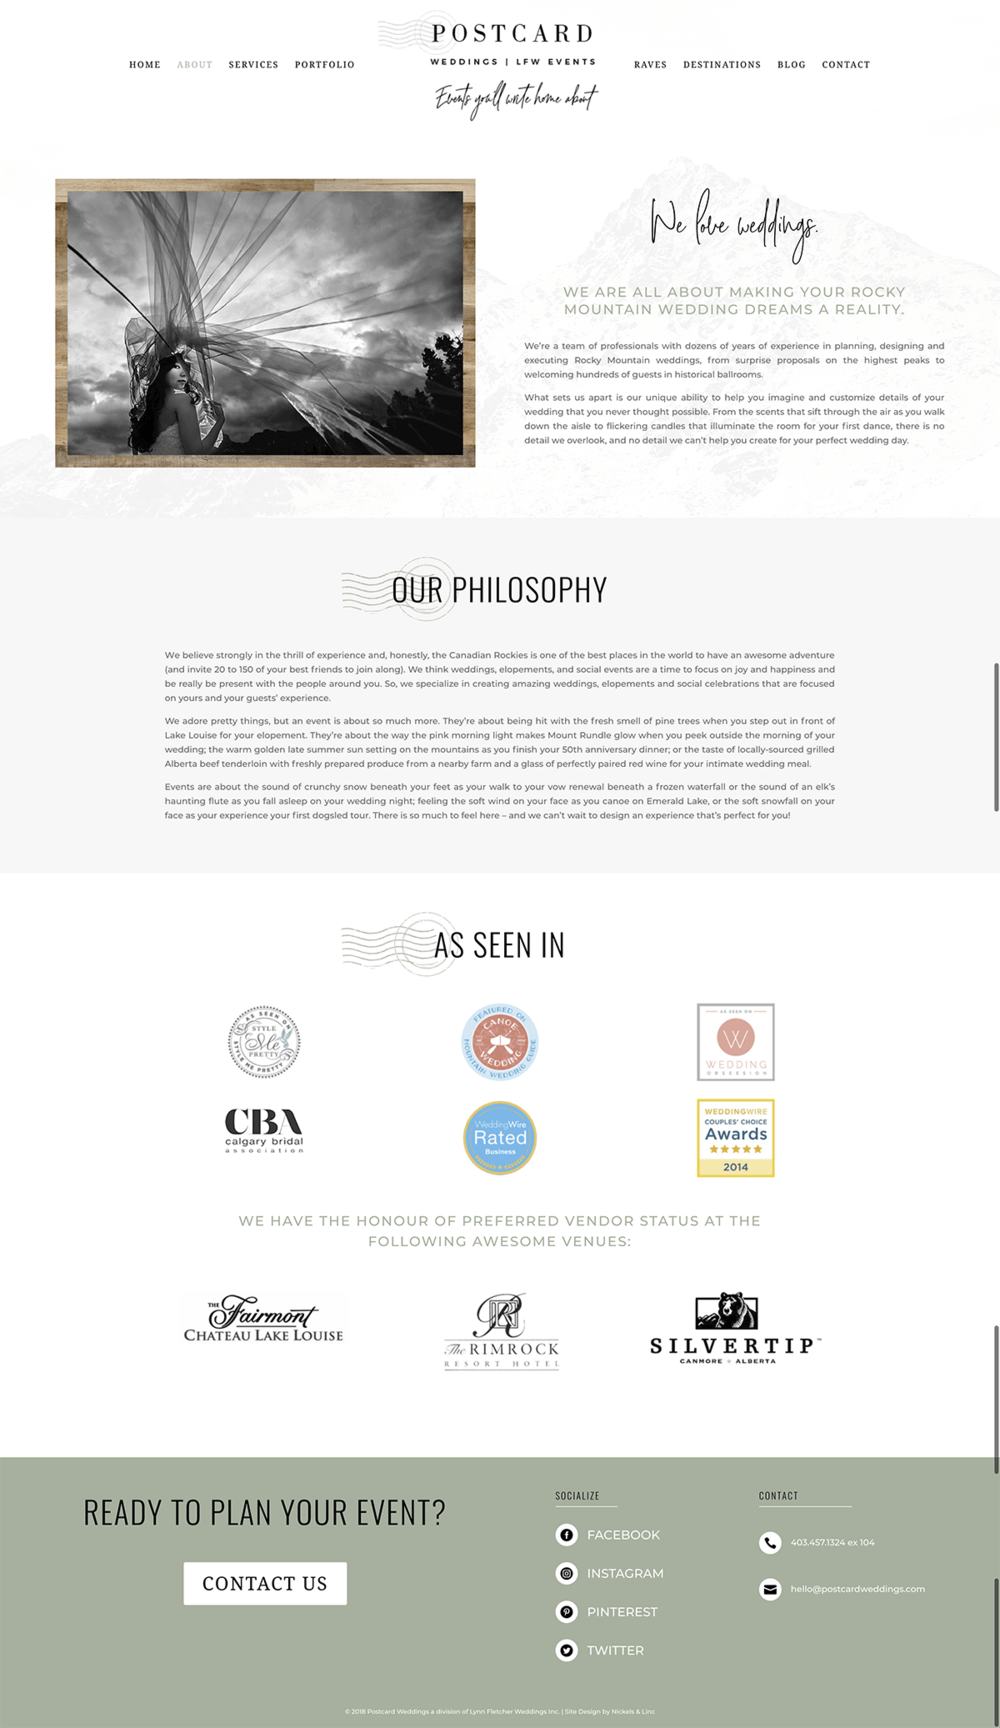 About-page-Postcard Weddings-website-design